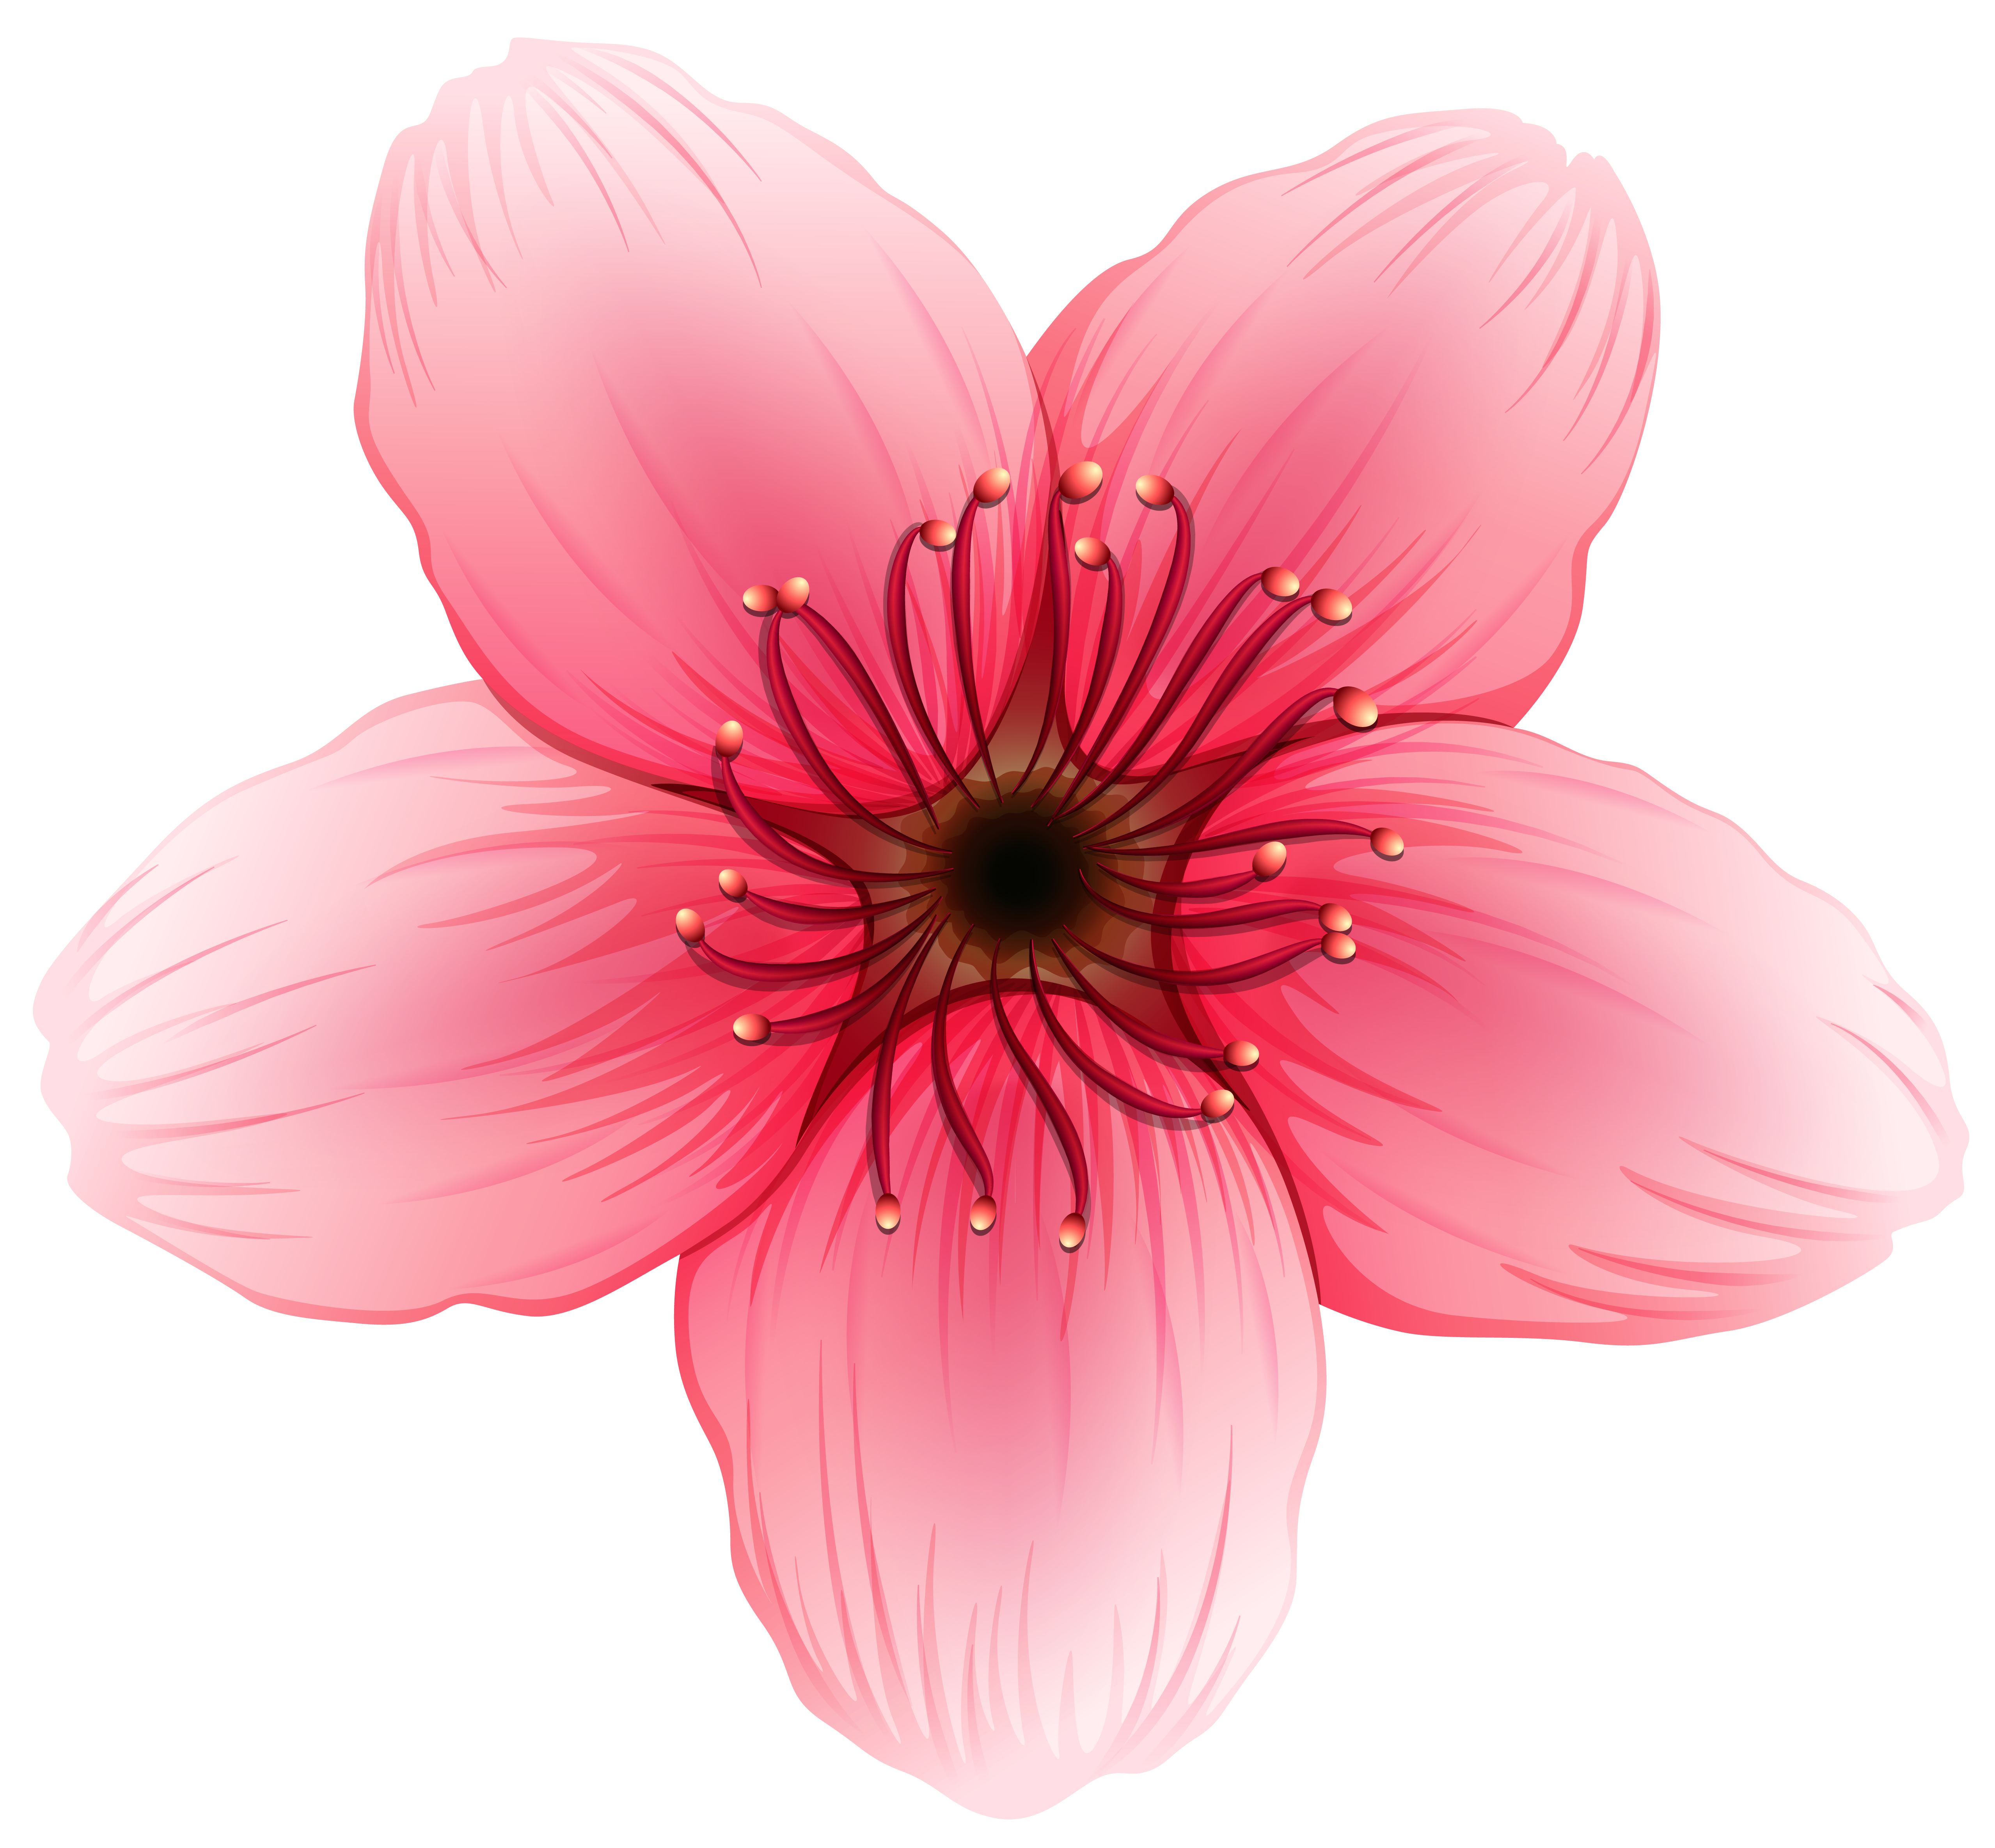 Image gallery yopriceville high. Flower png clipart